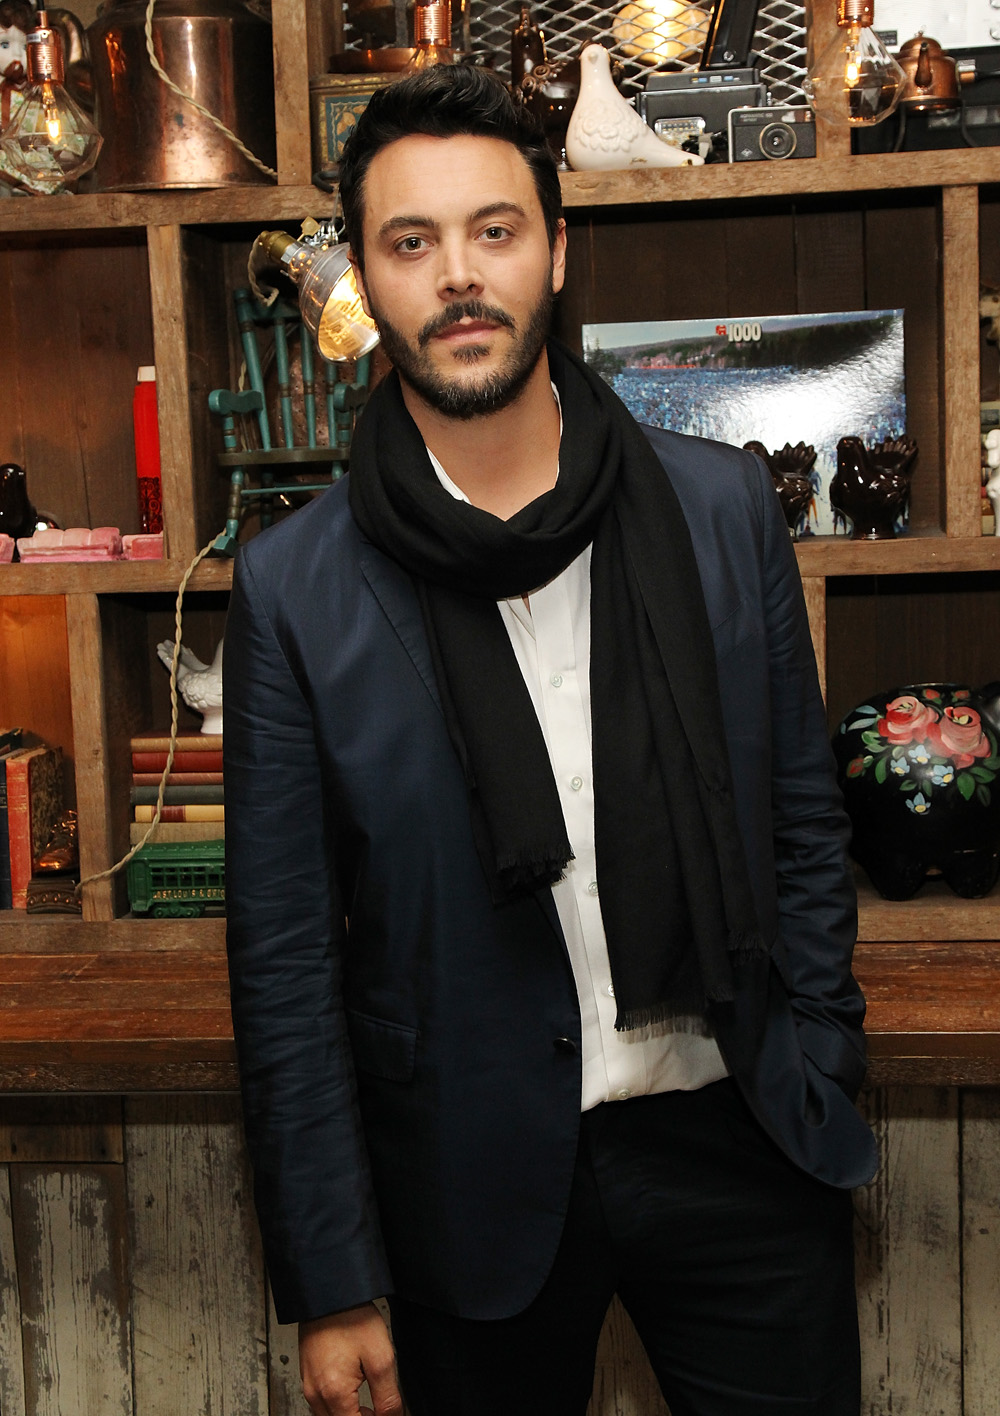 """NEW YORK, NY - APRIL 16: Actor Jack Huston poses for a picture during the At Large Magazine dinner in Honor of cover star Jack Huston at Elyx House on April 16, 2016 in New York City. (Photo by Bennett Raglin/Getty Images for Absolut Elyx)"""